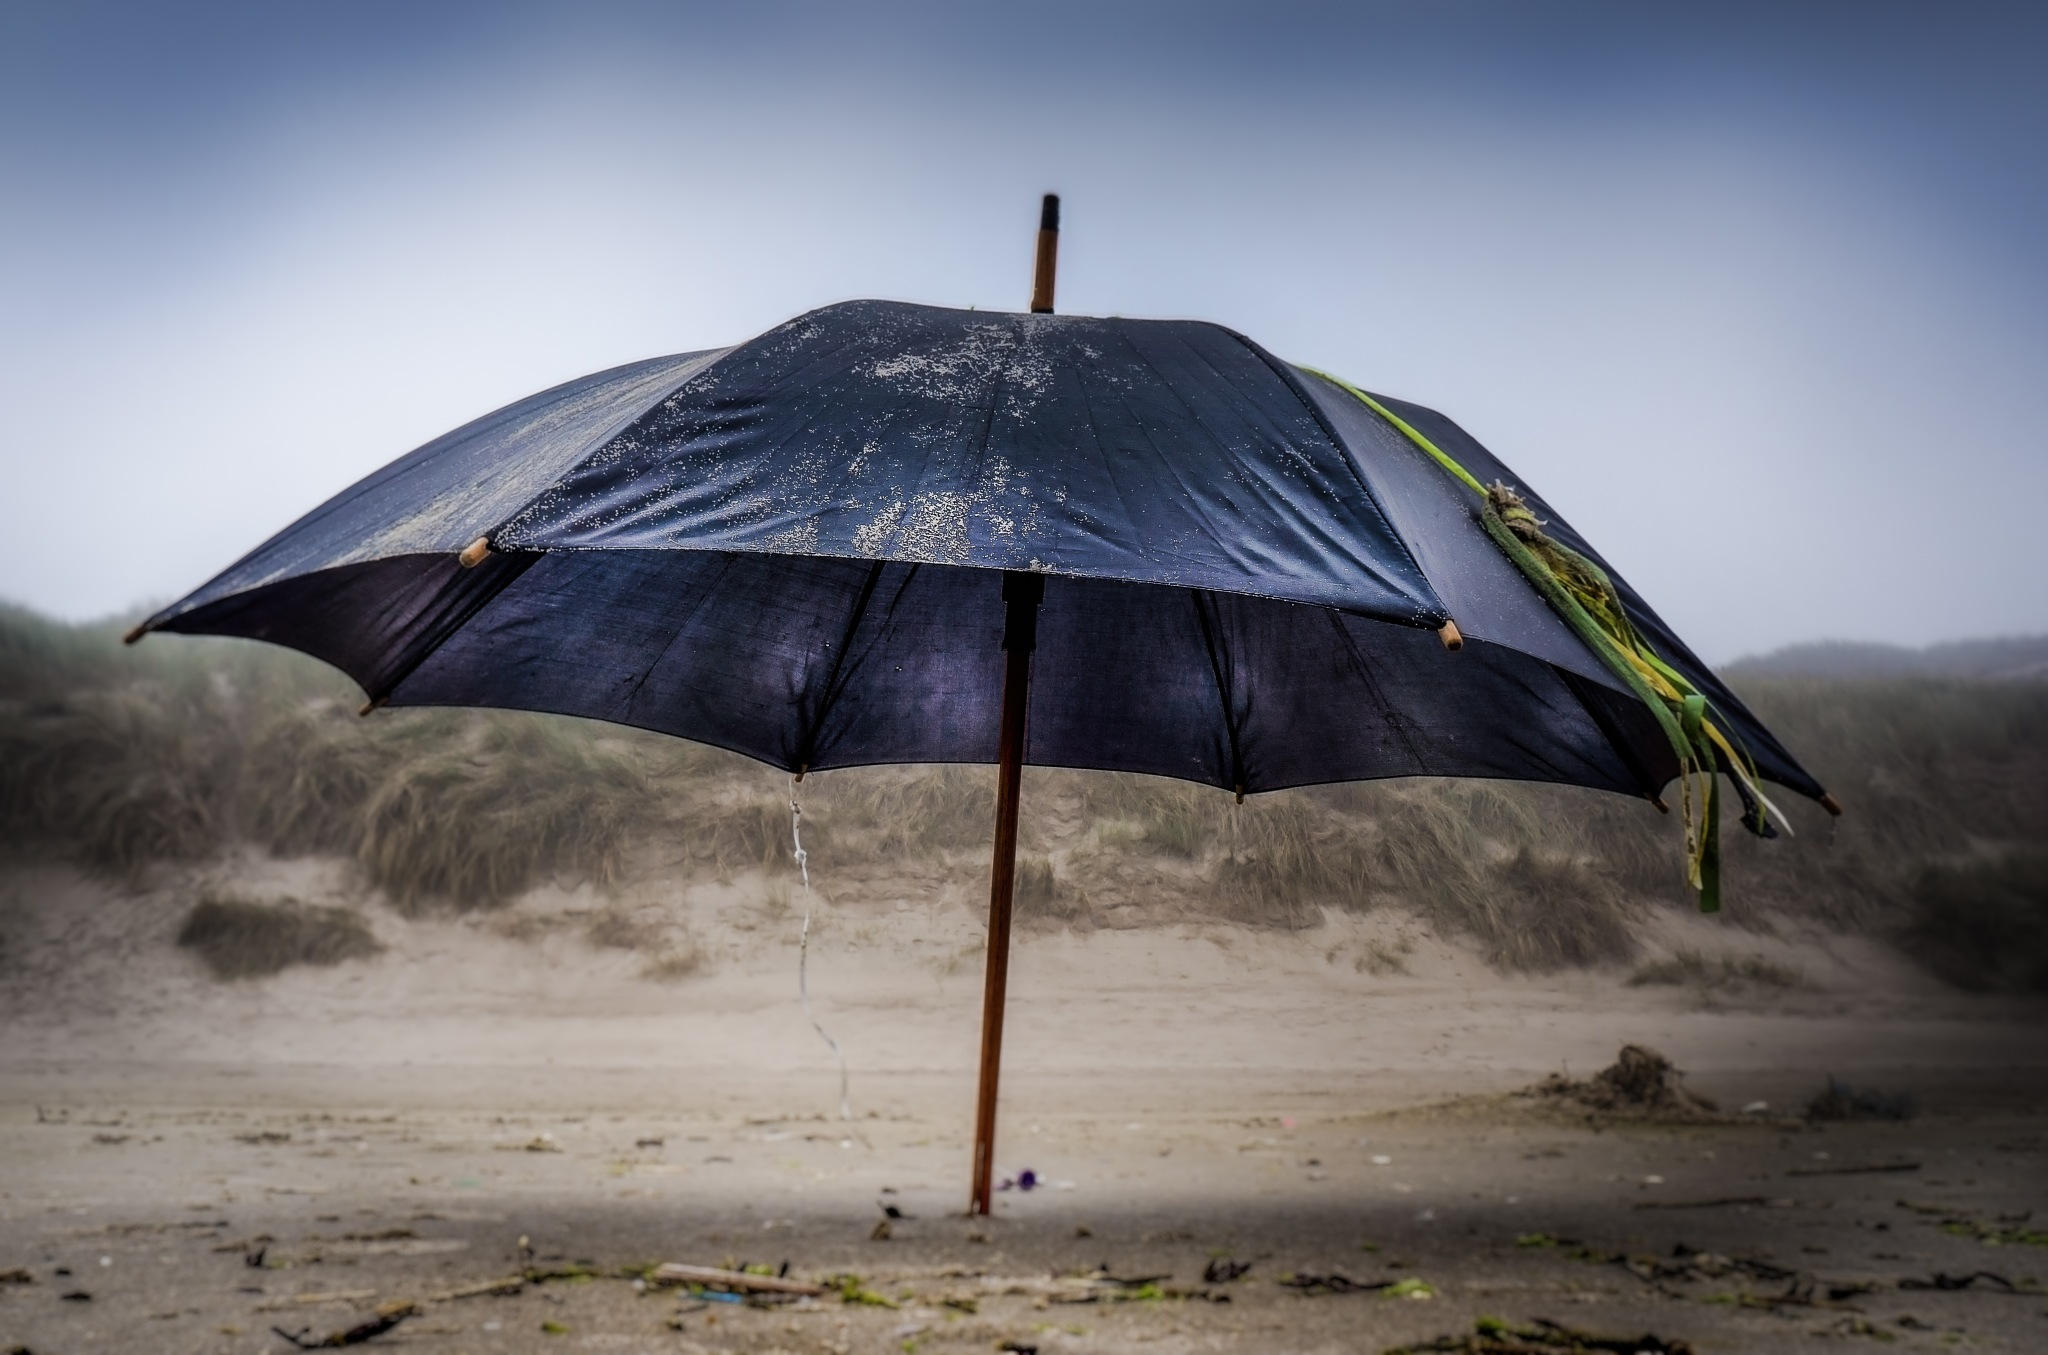 Beach 'brella by Peter van der Waard